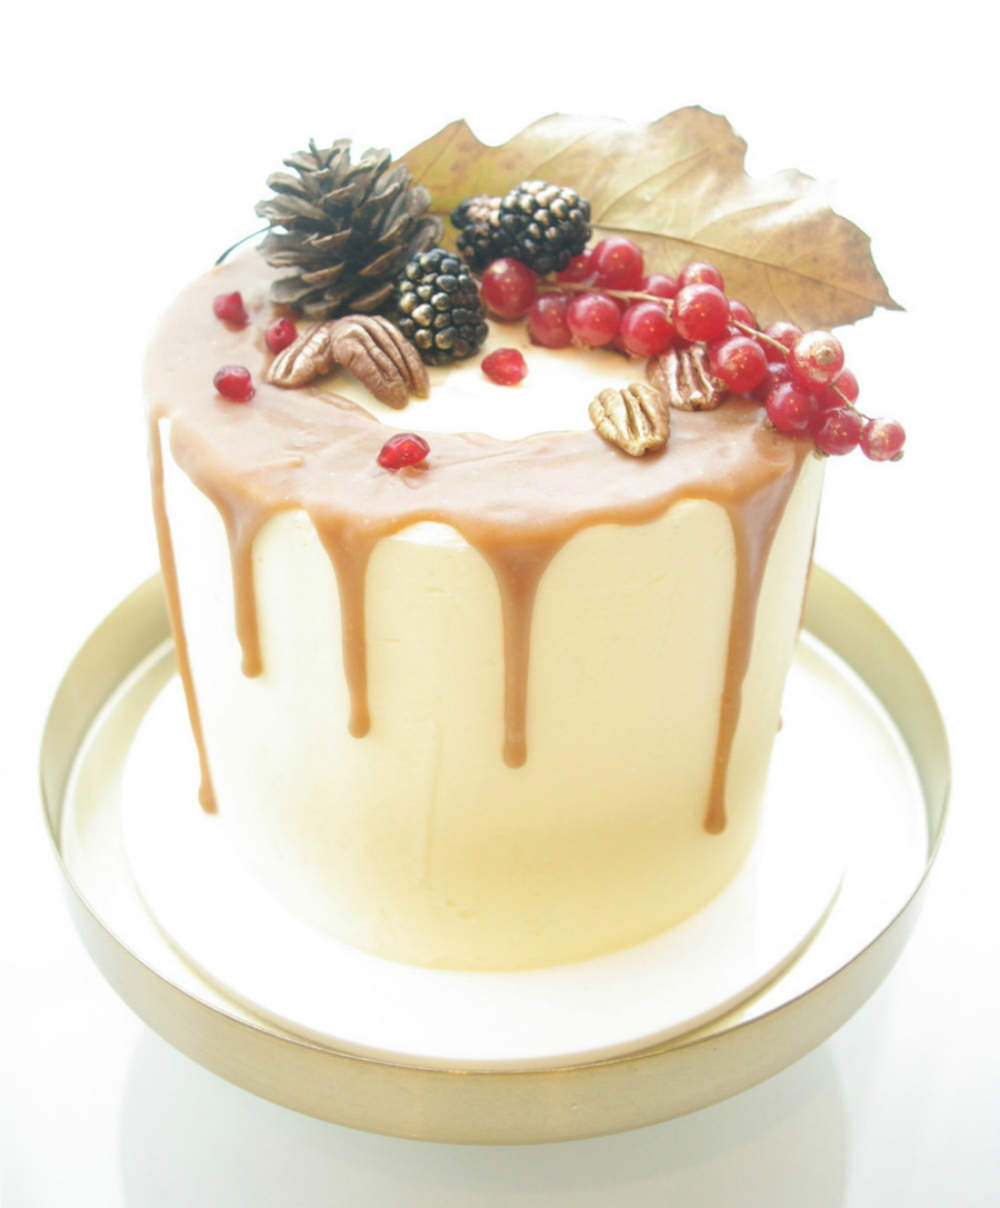 A gluten-free nut drizzle cake, decorated with berries, nuts and pine cones.